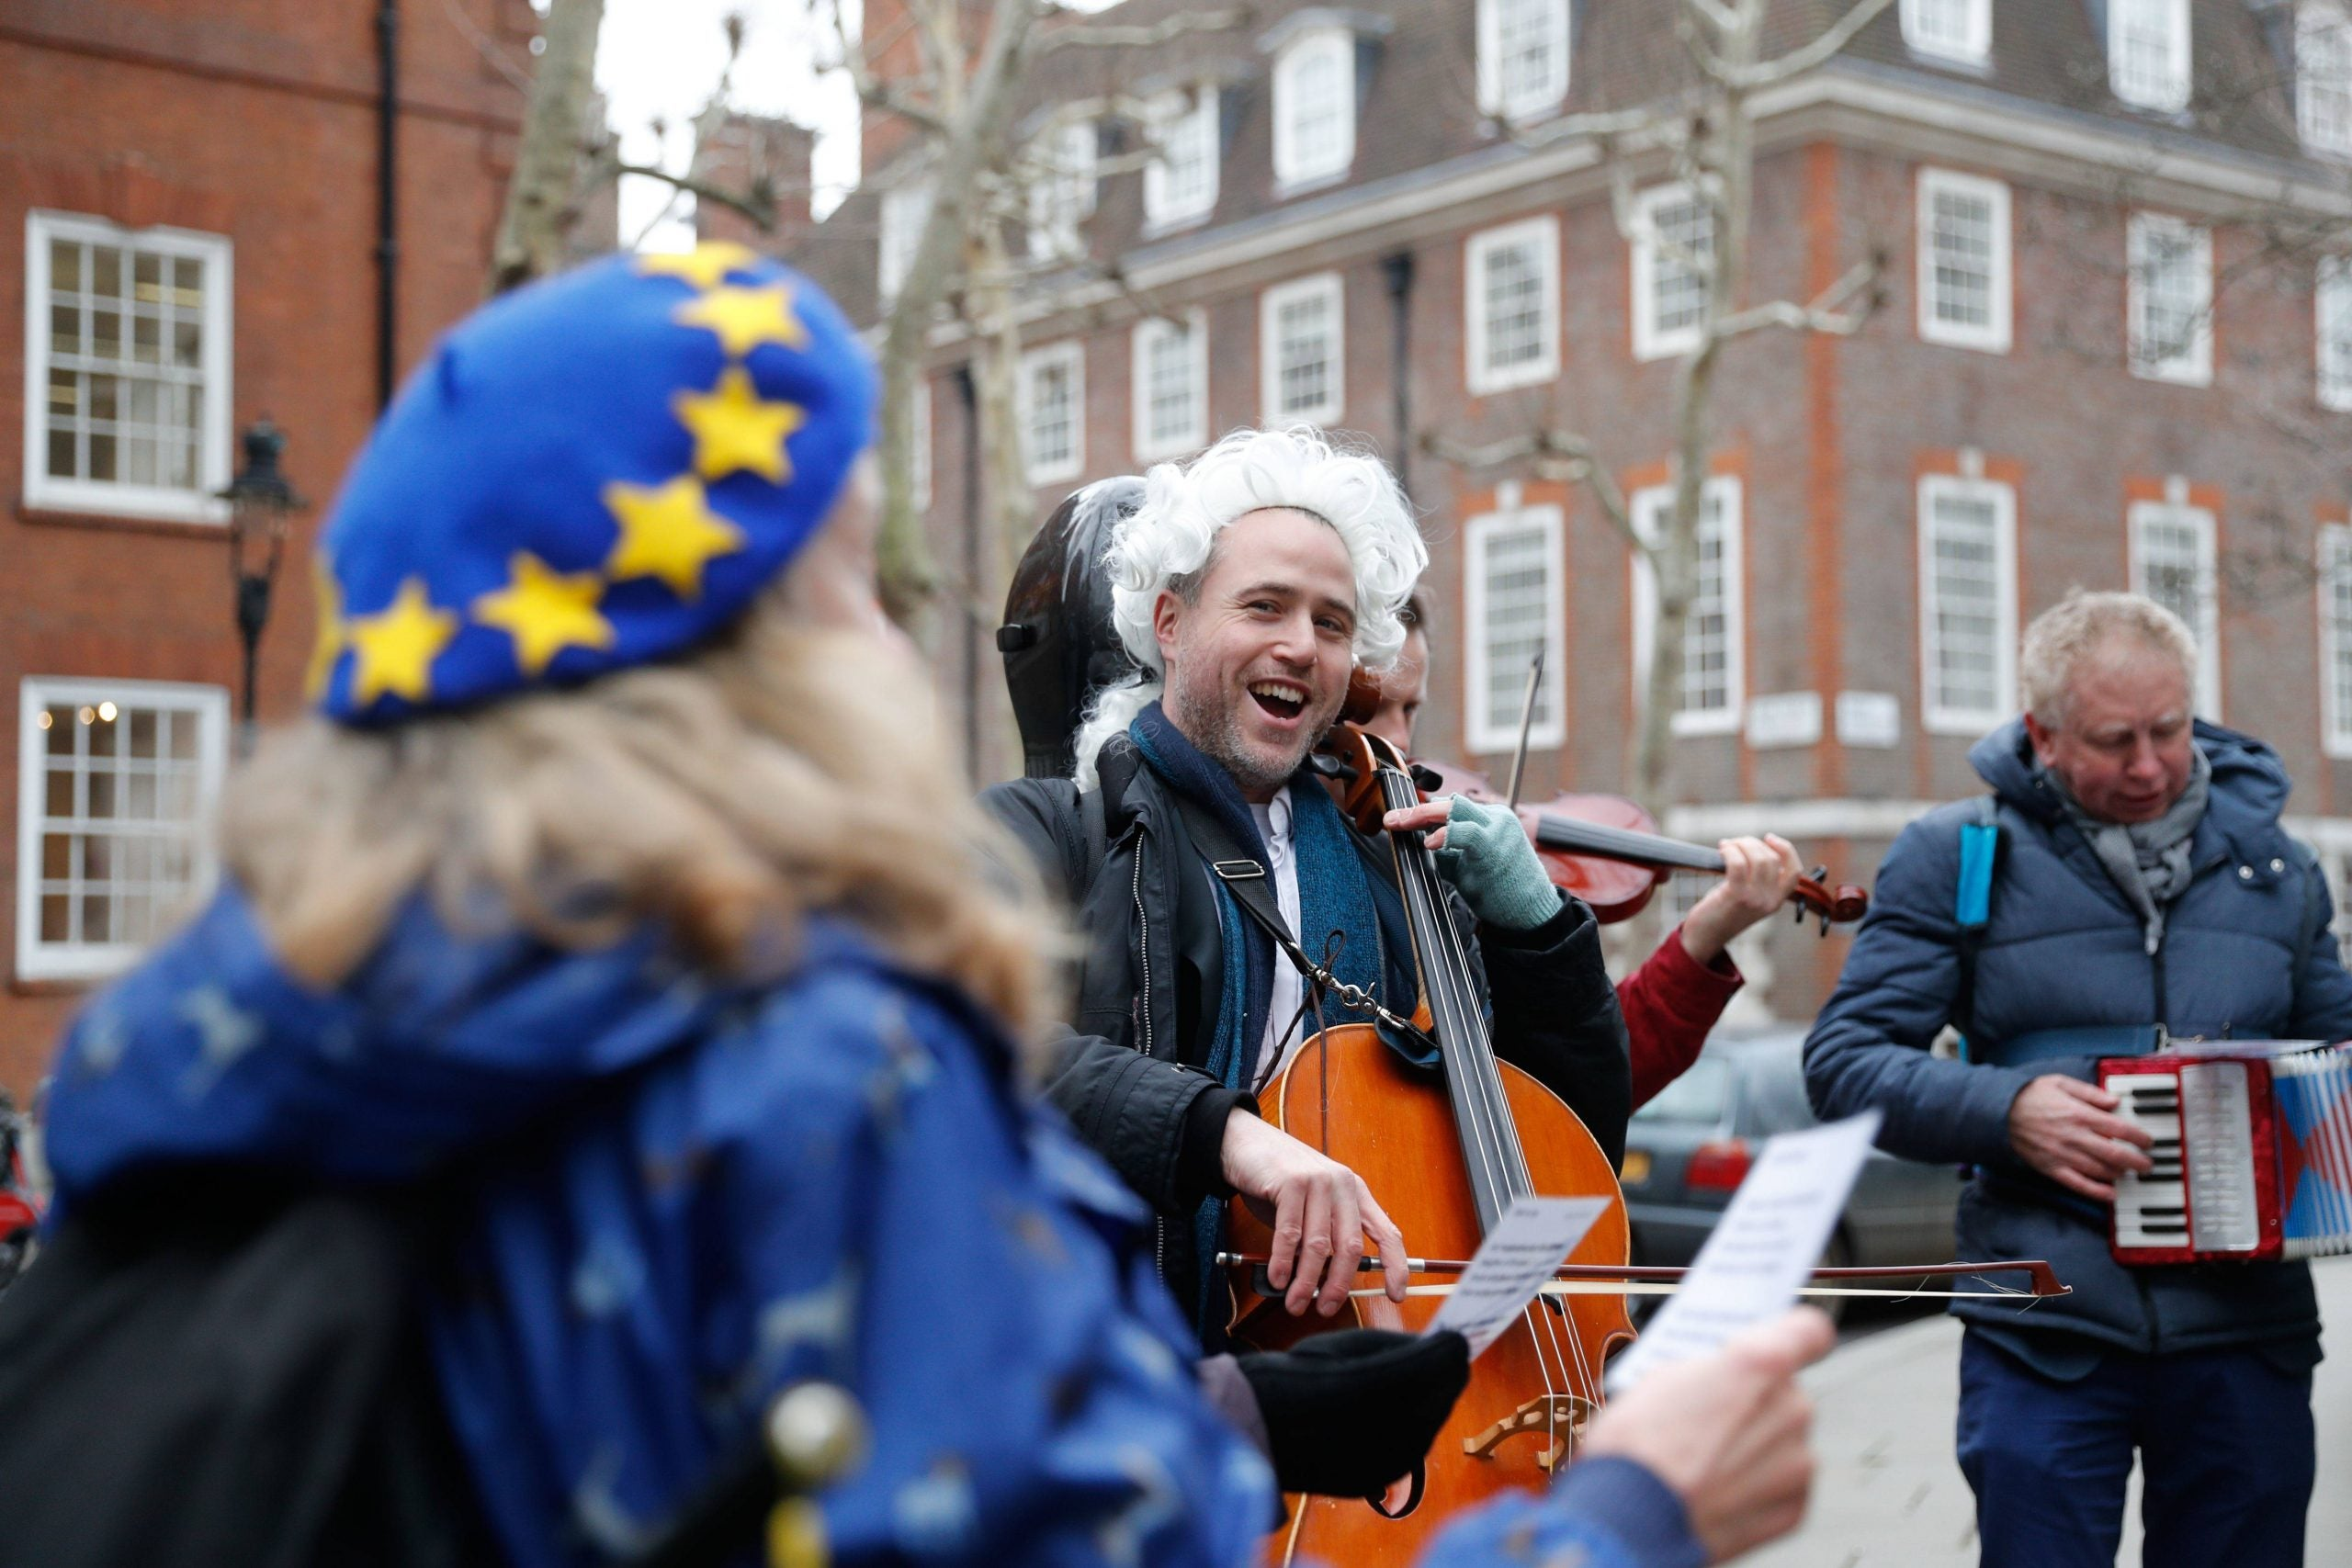 One man writes the music for Brexit – feat. deep fried trumpet and the sound of Chequers